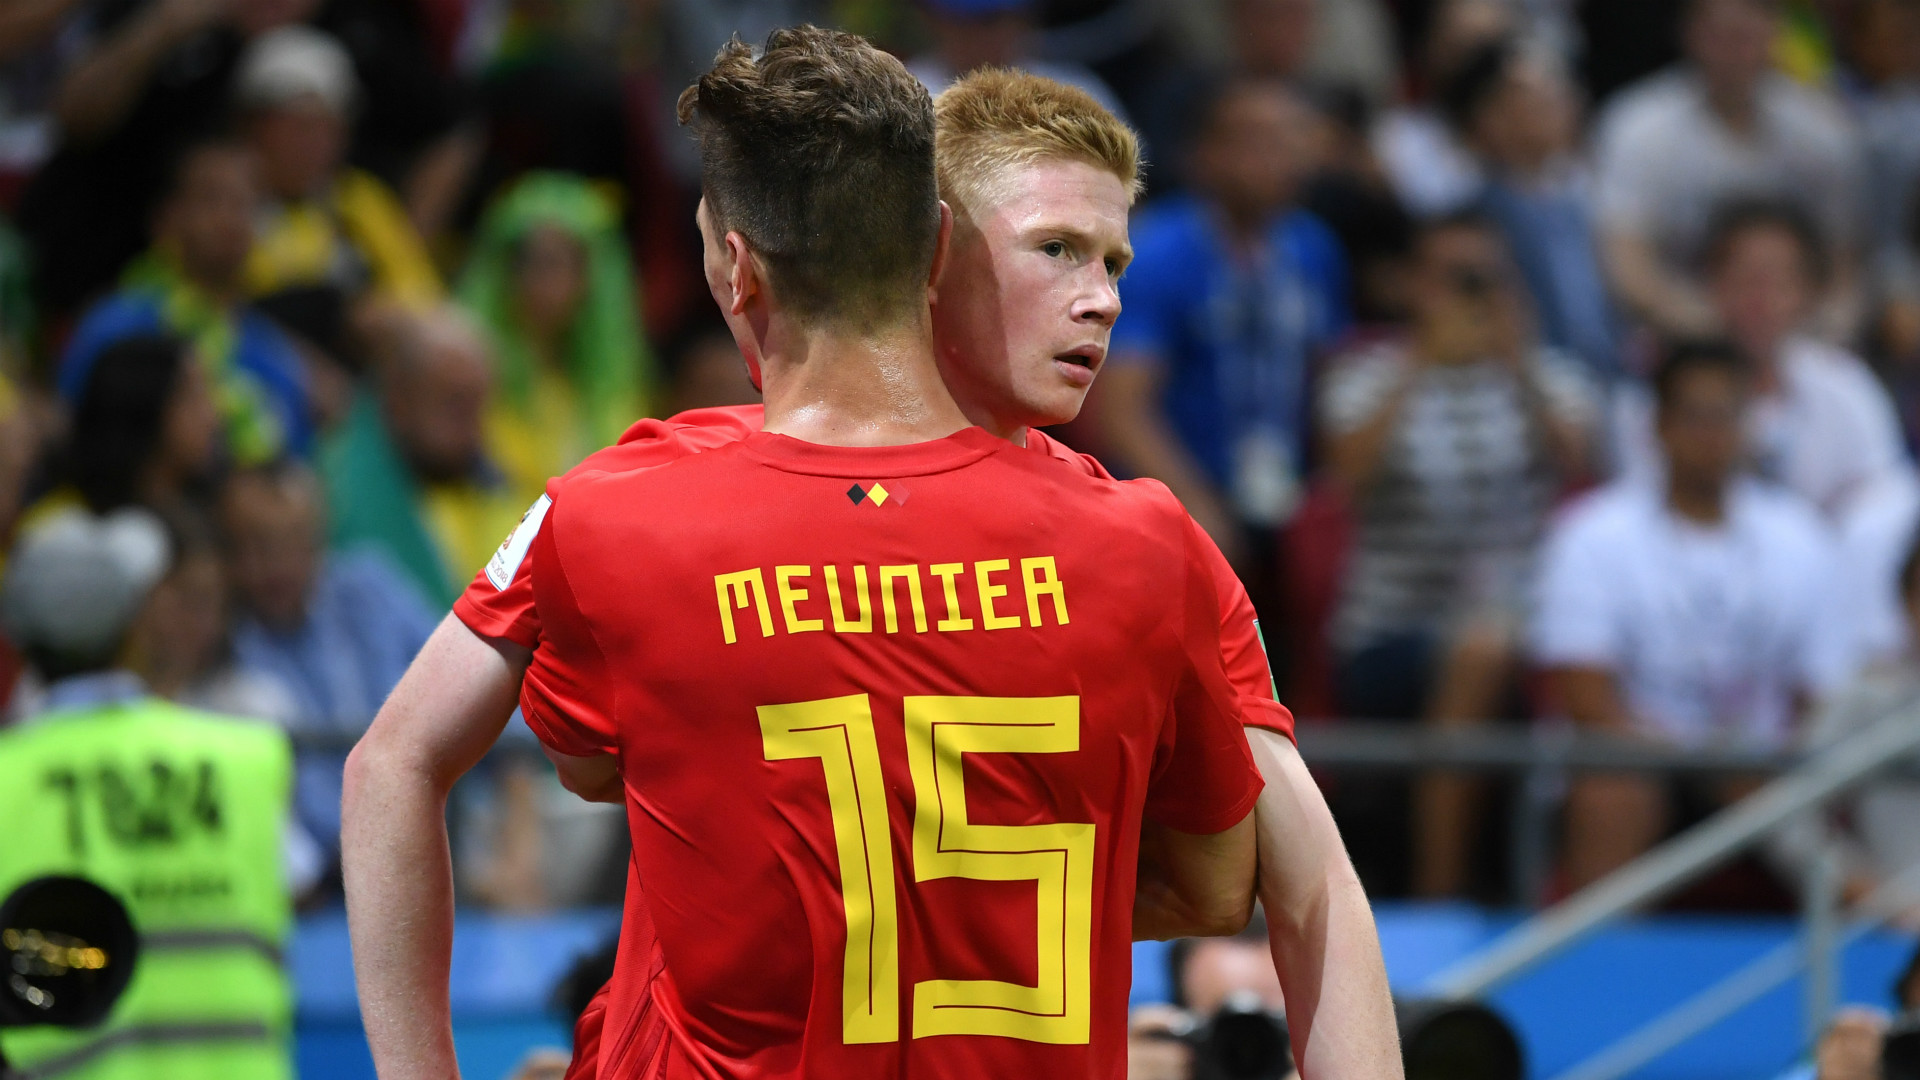 World Cup 2018: Belgium vs. England preview, players to watch, key stats